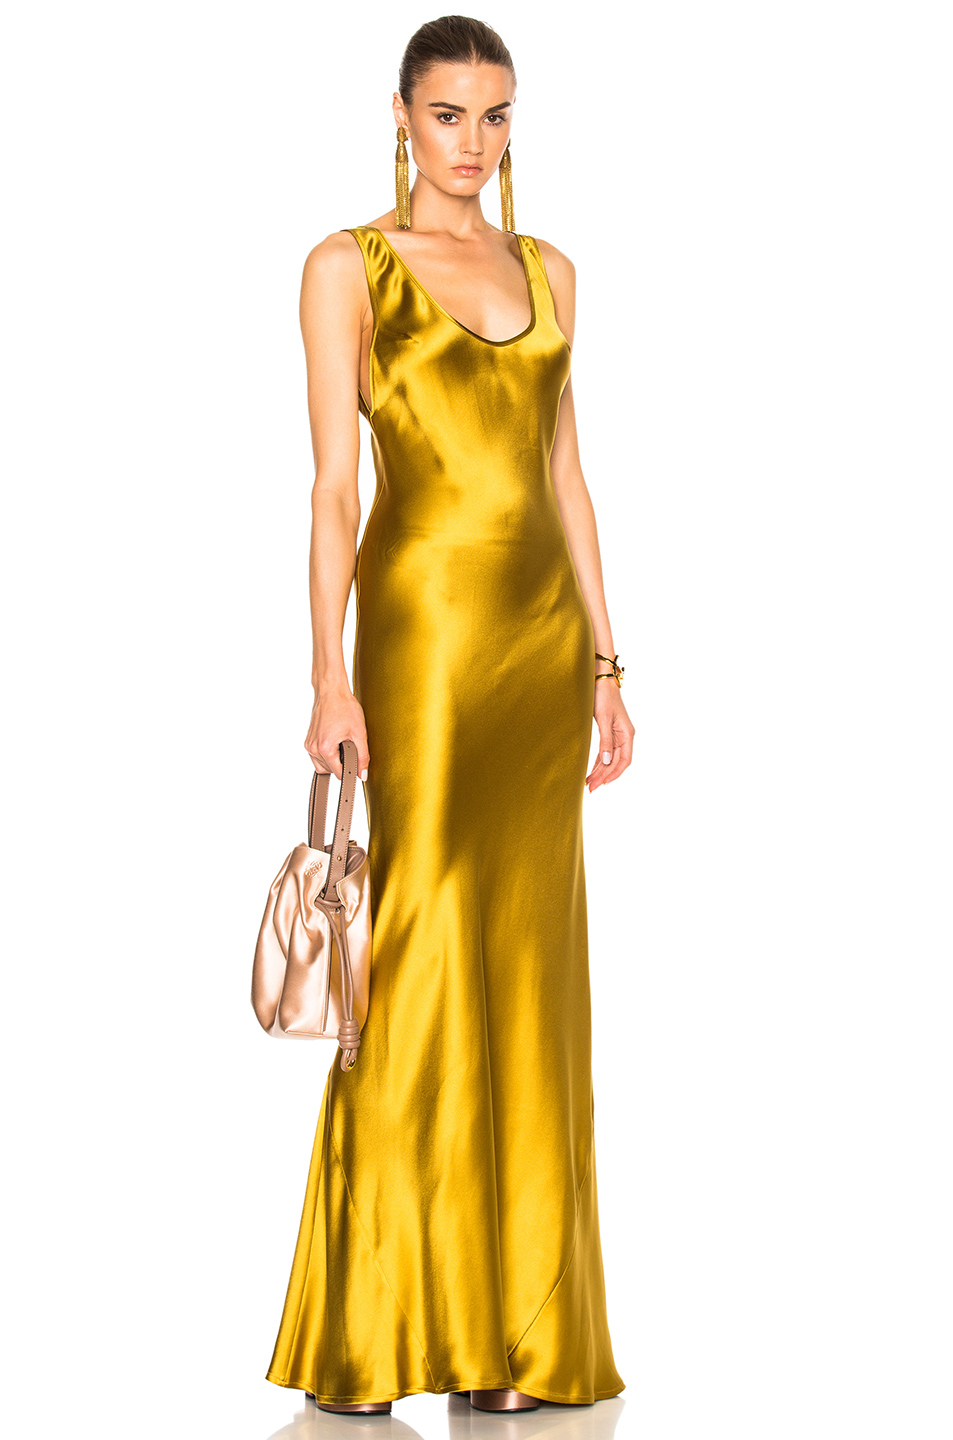 GALVAN Signature 90s Slip Bias Dress in Metallics,Yellow